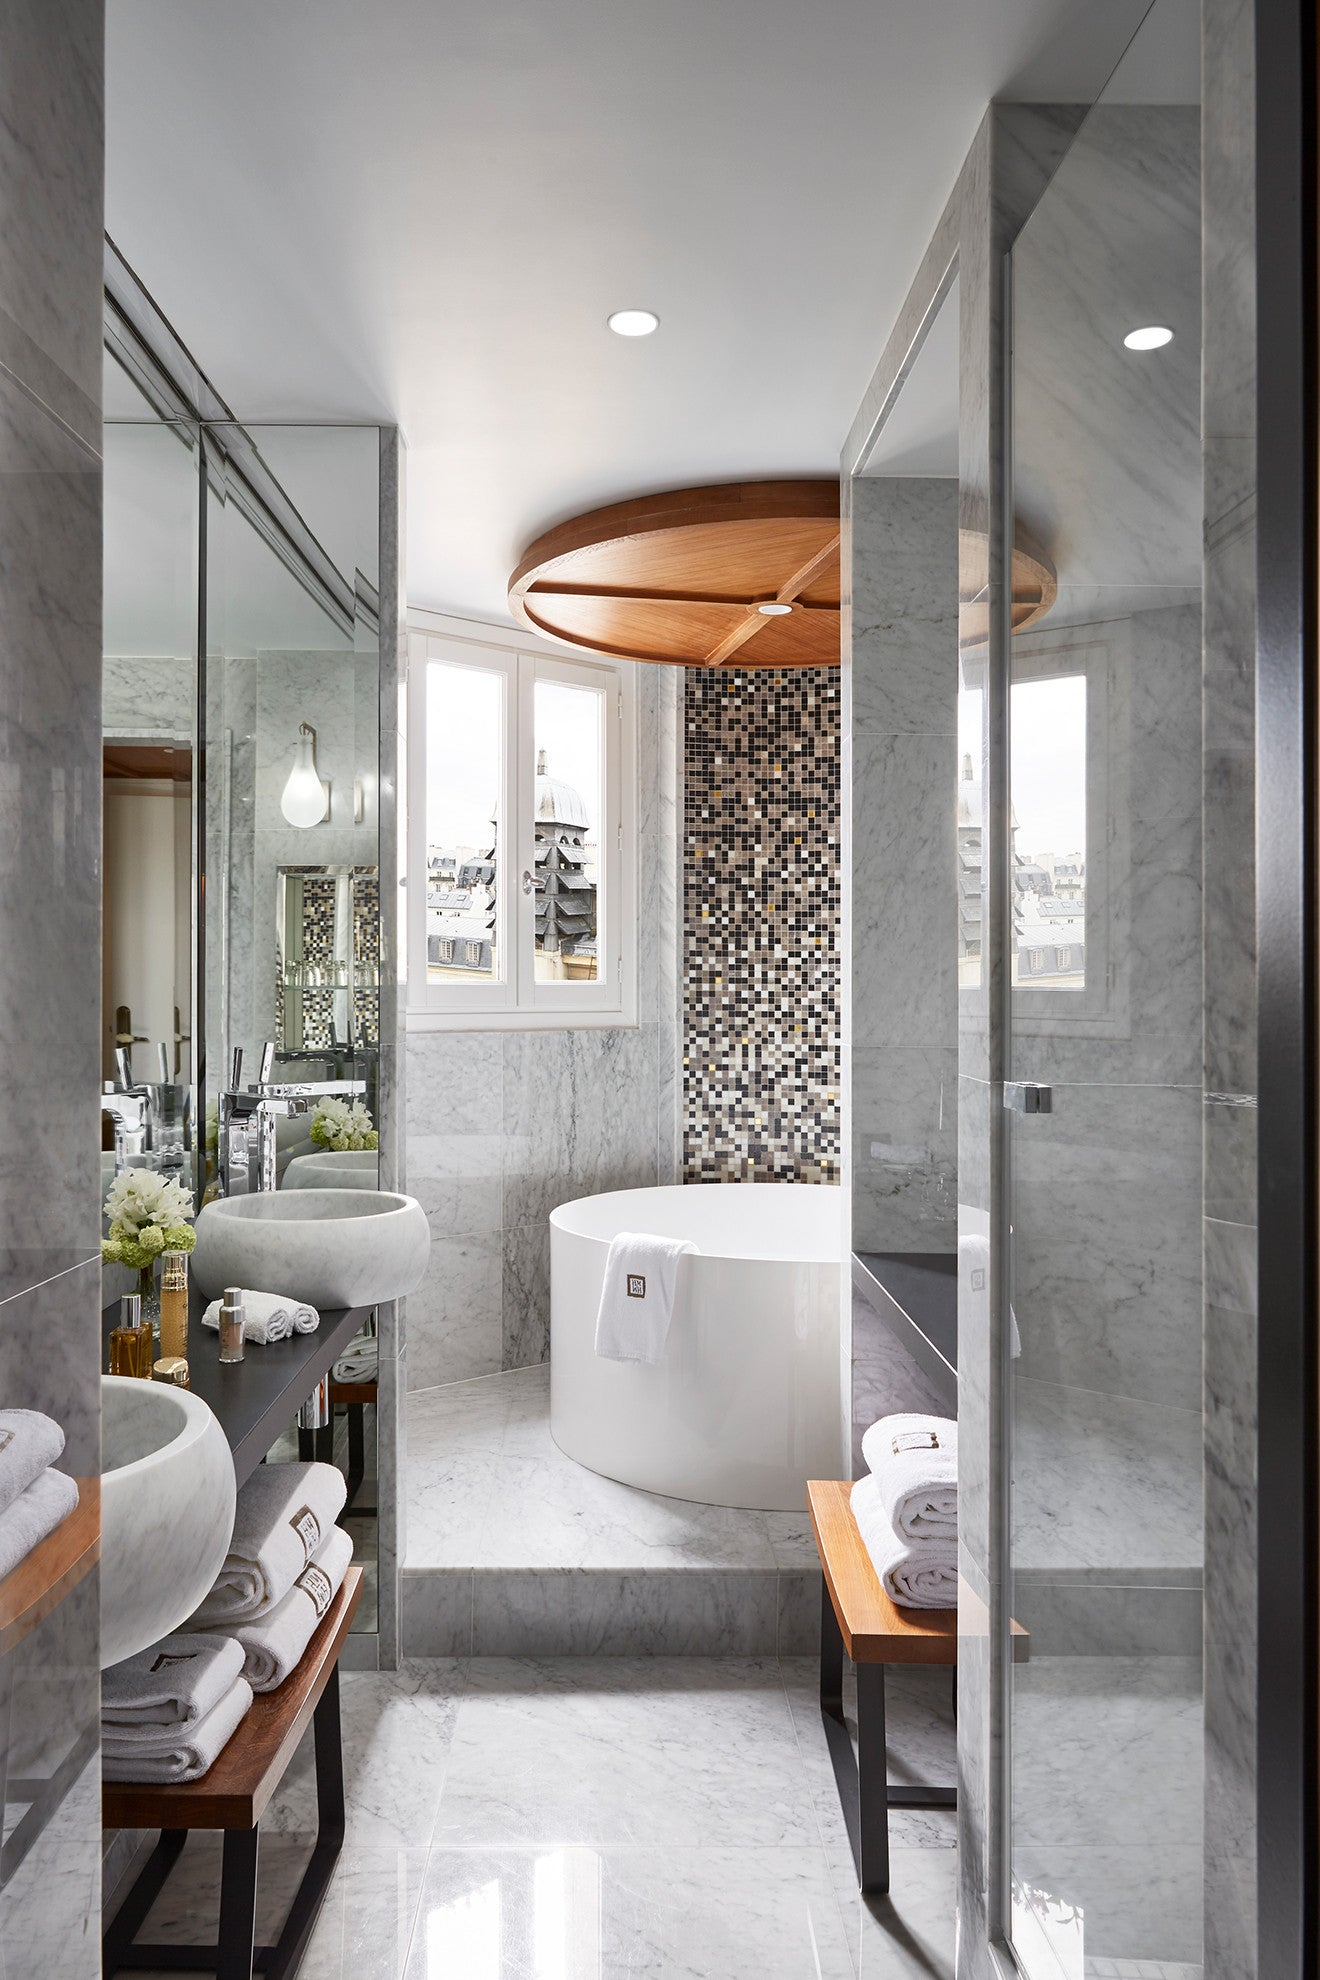 Luxury bathroom design at Hotel Montalembert